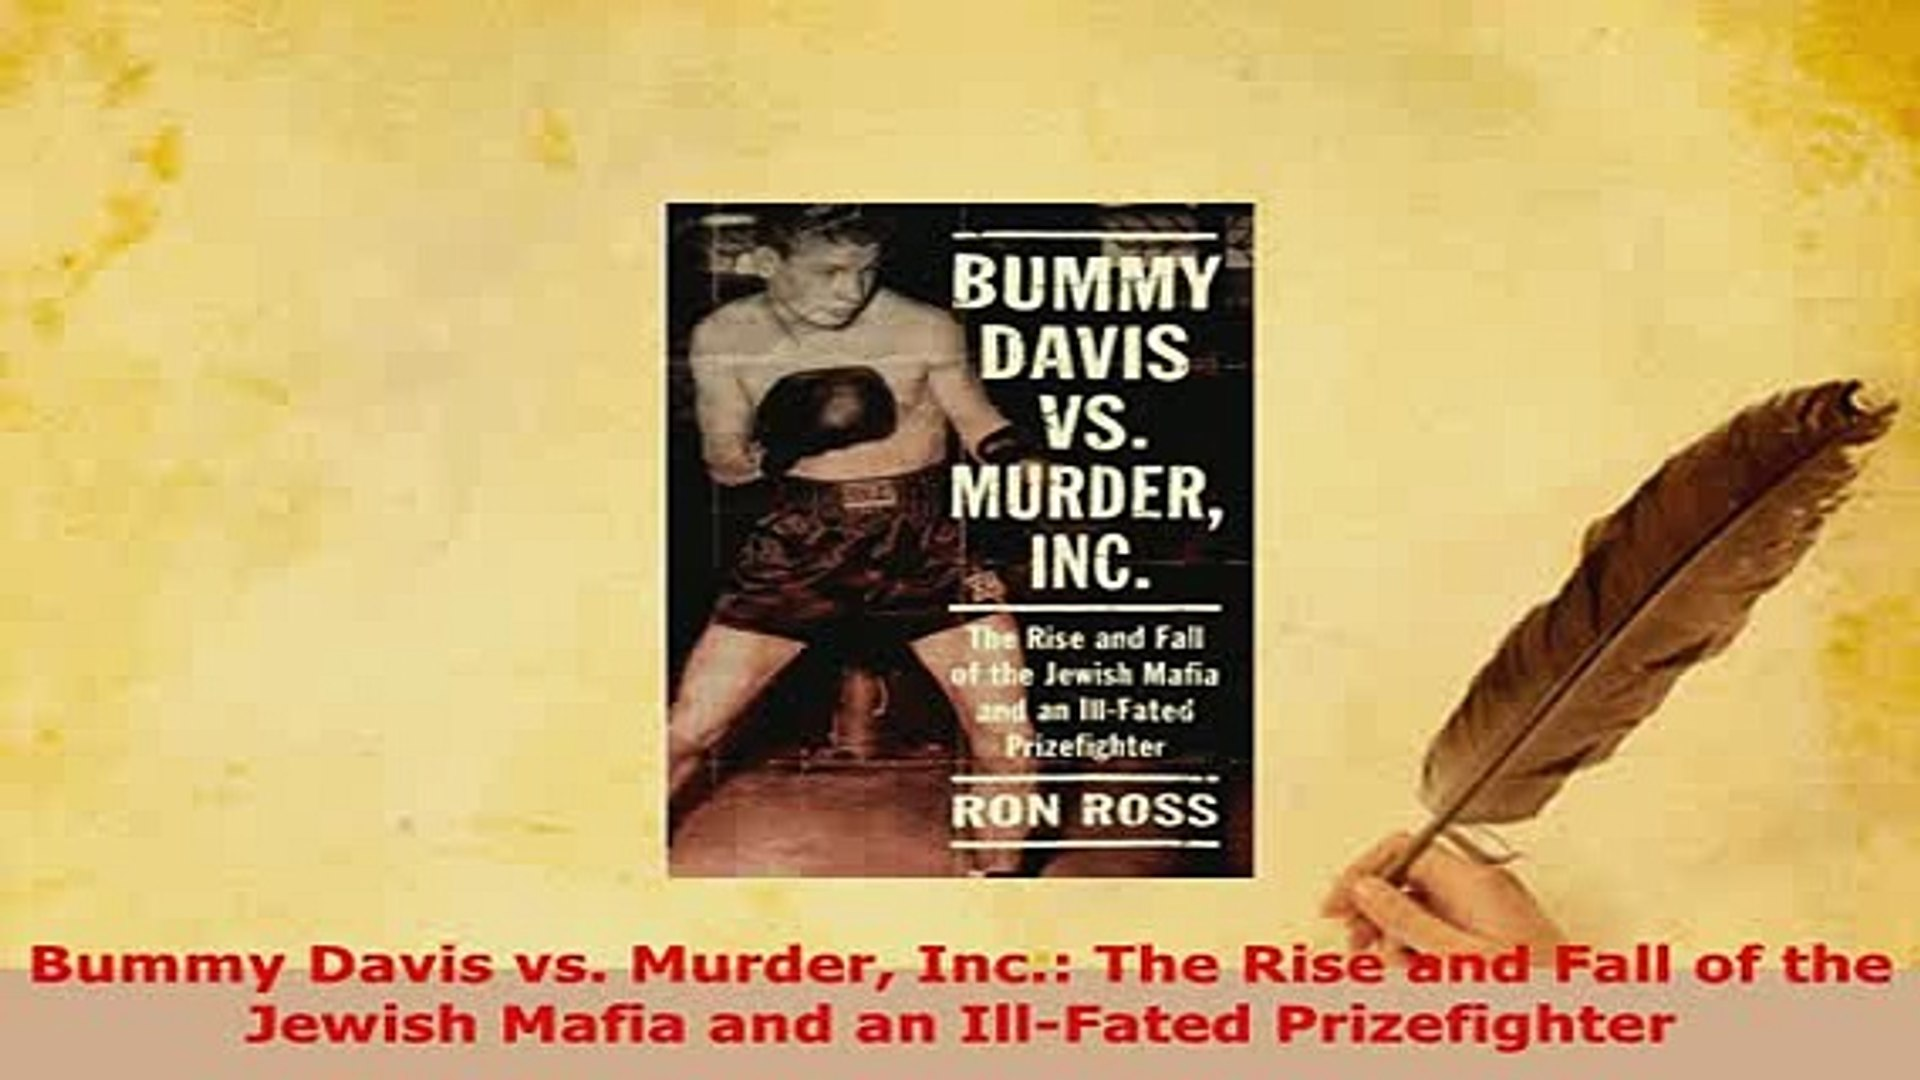 Inc. Bummy Davis vs Murder The Rise and Fall of the Jewish Mafia and an Ill-Fated Prizefighter